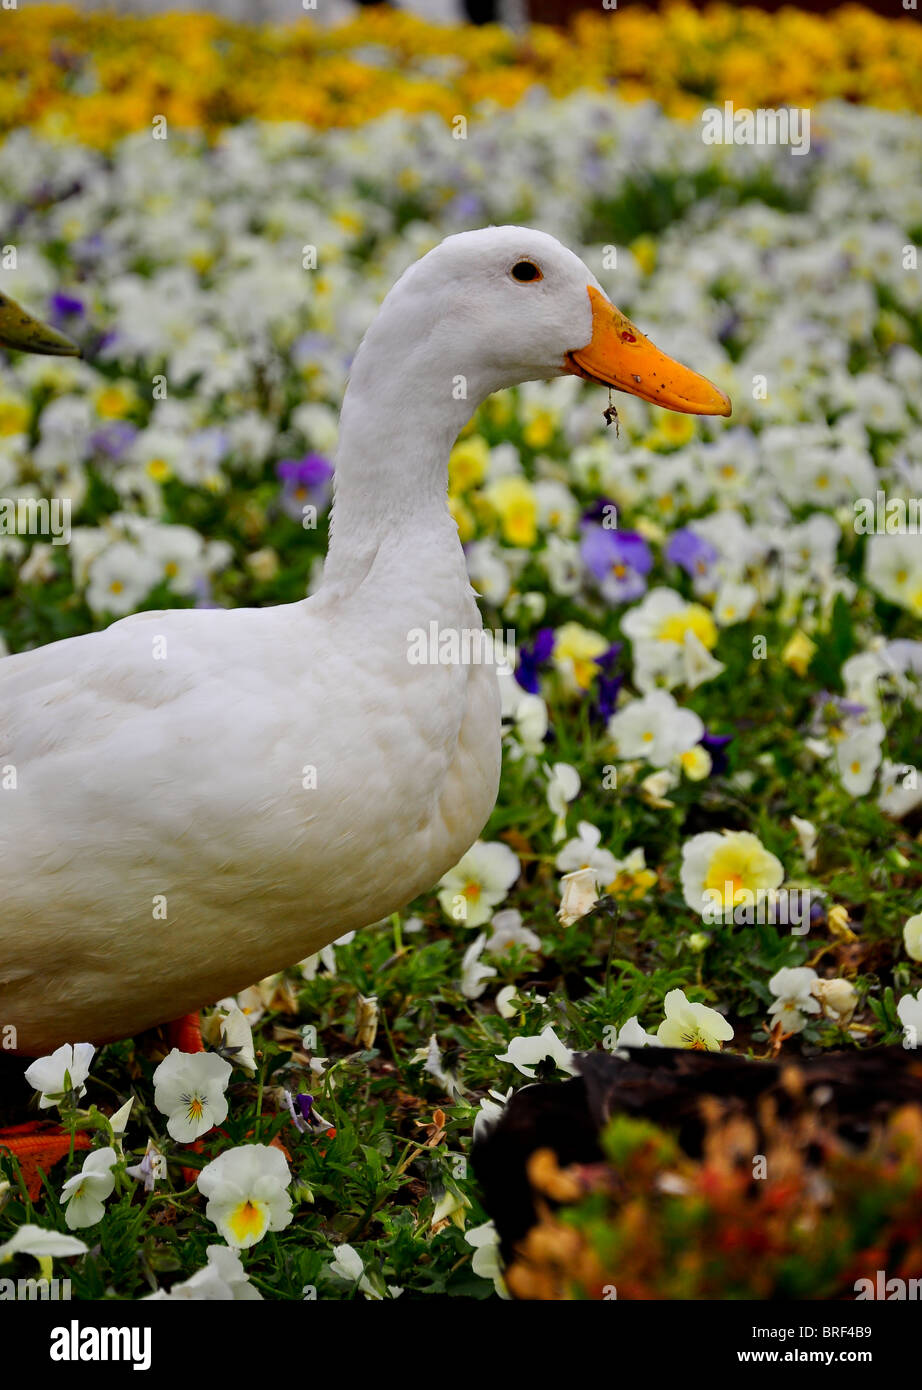 A white duck is playing on flowers - Stock Image